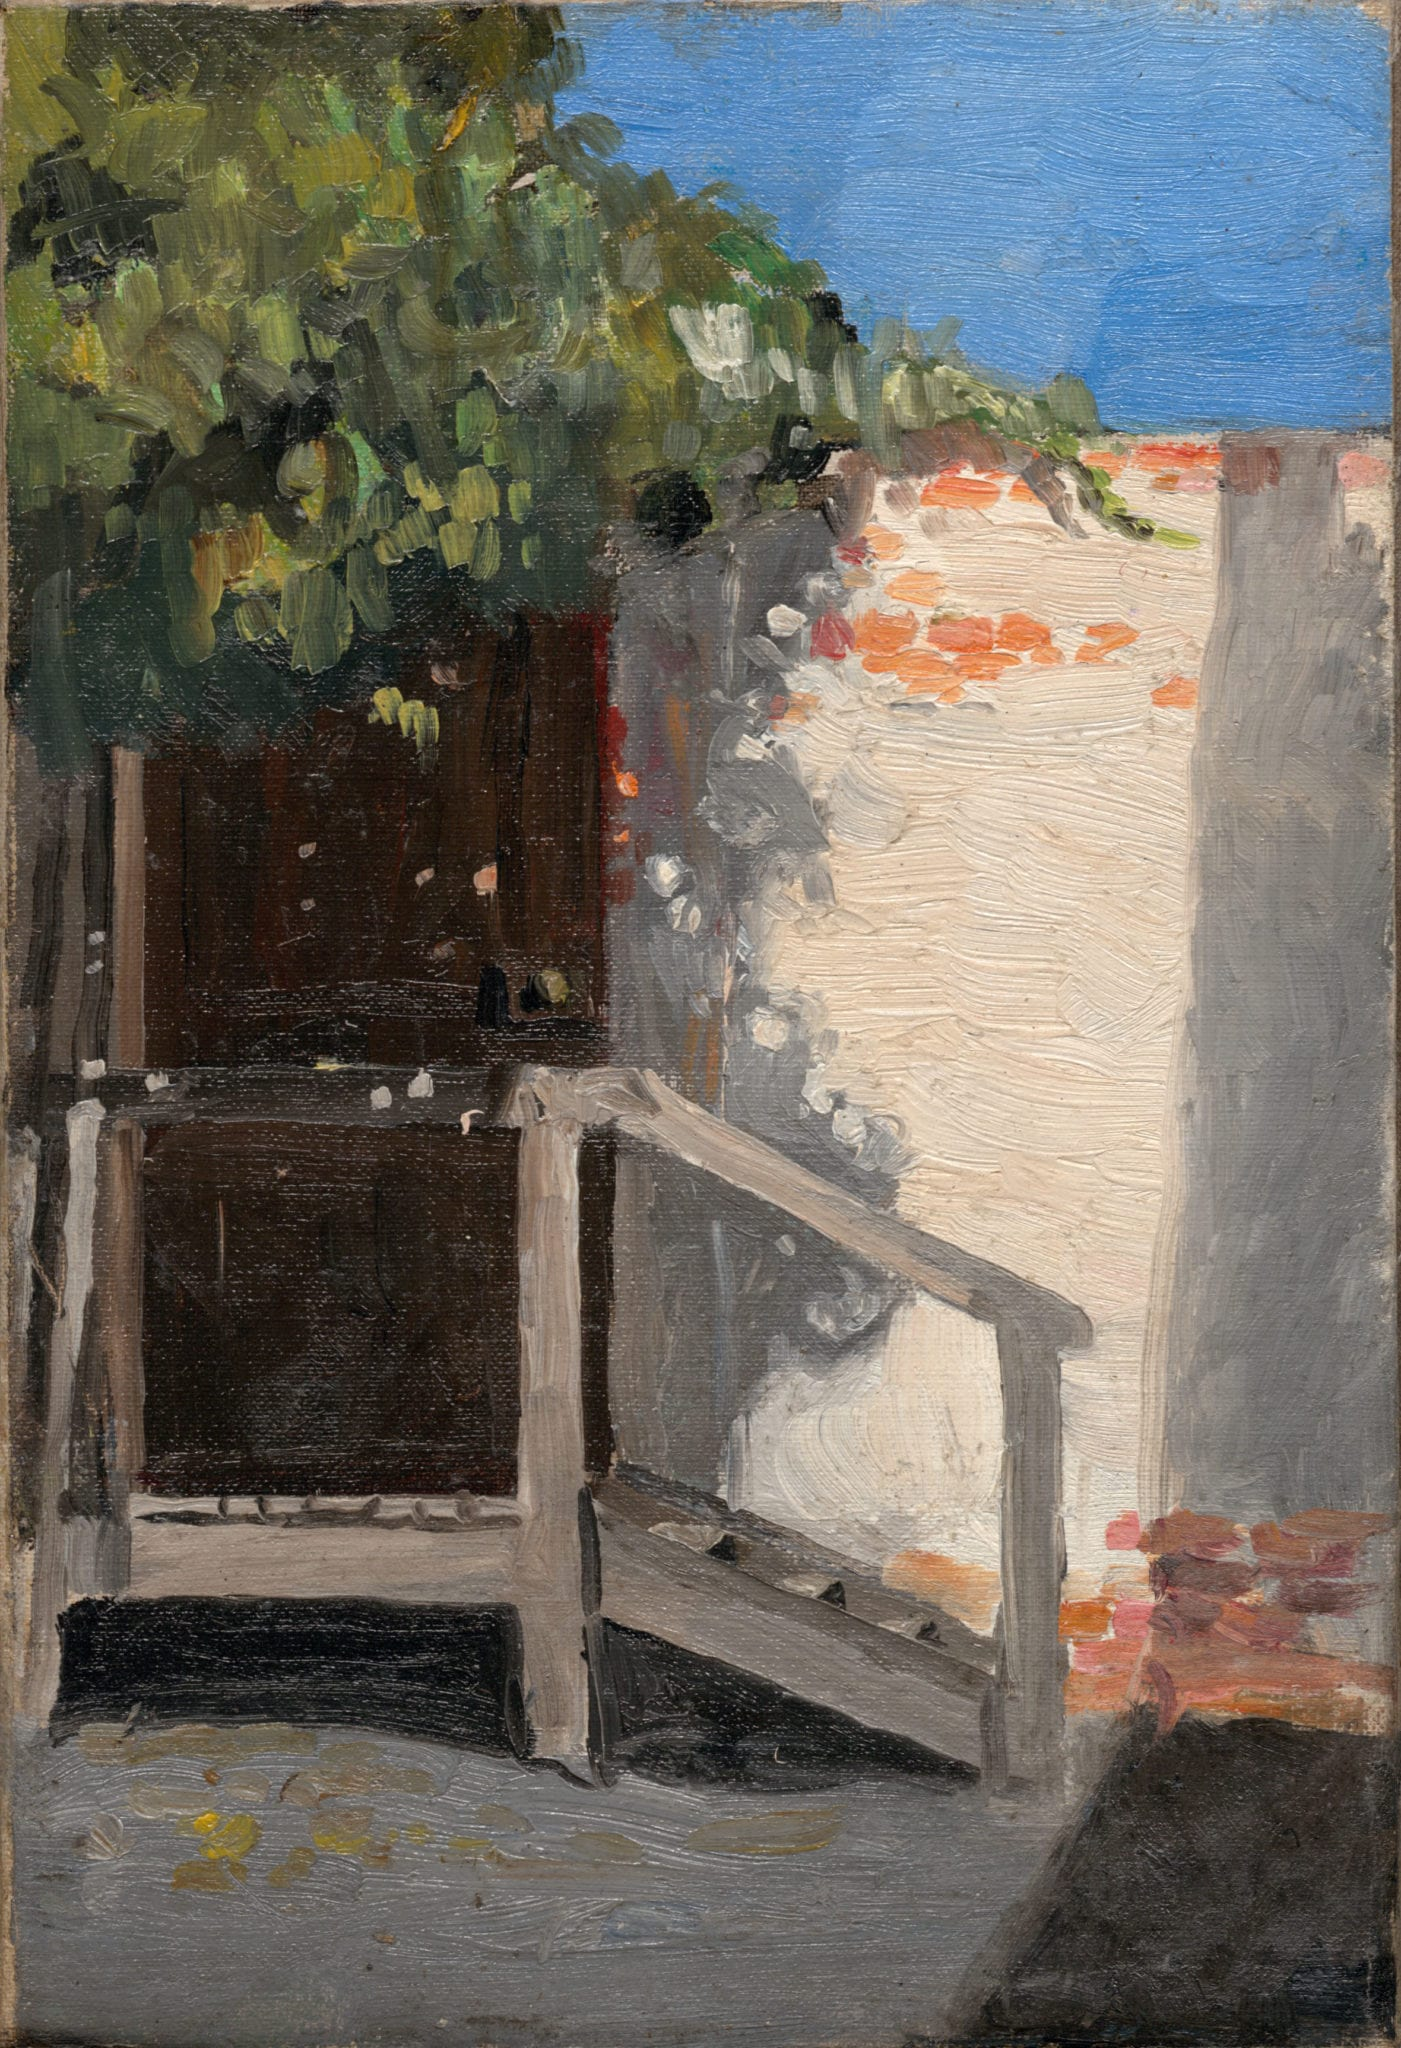 Mary Meyer, Door in the Brick Wall, nd. Oil on canvas board, 30 x 20 cm. Latrobe Regional Gallery Collection.